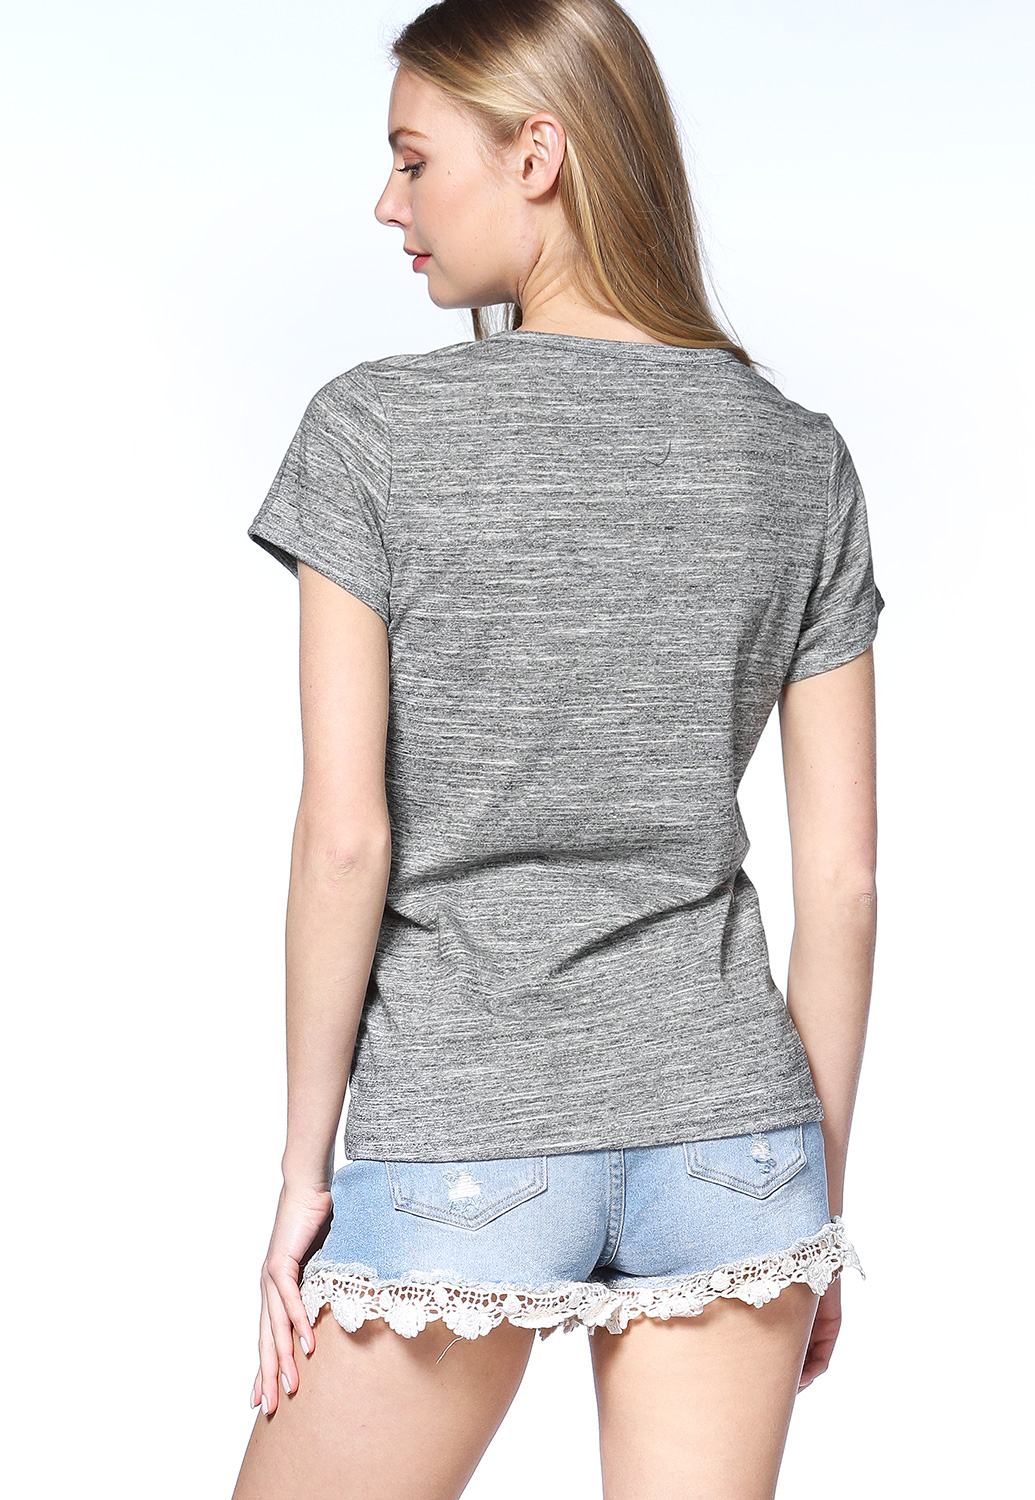 Pocket Detail Activewear Top